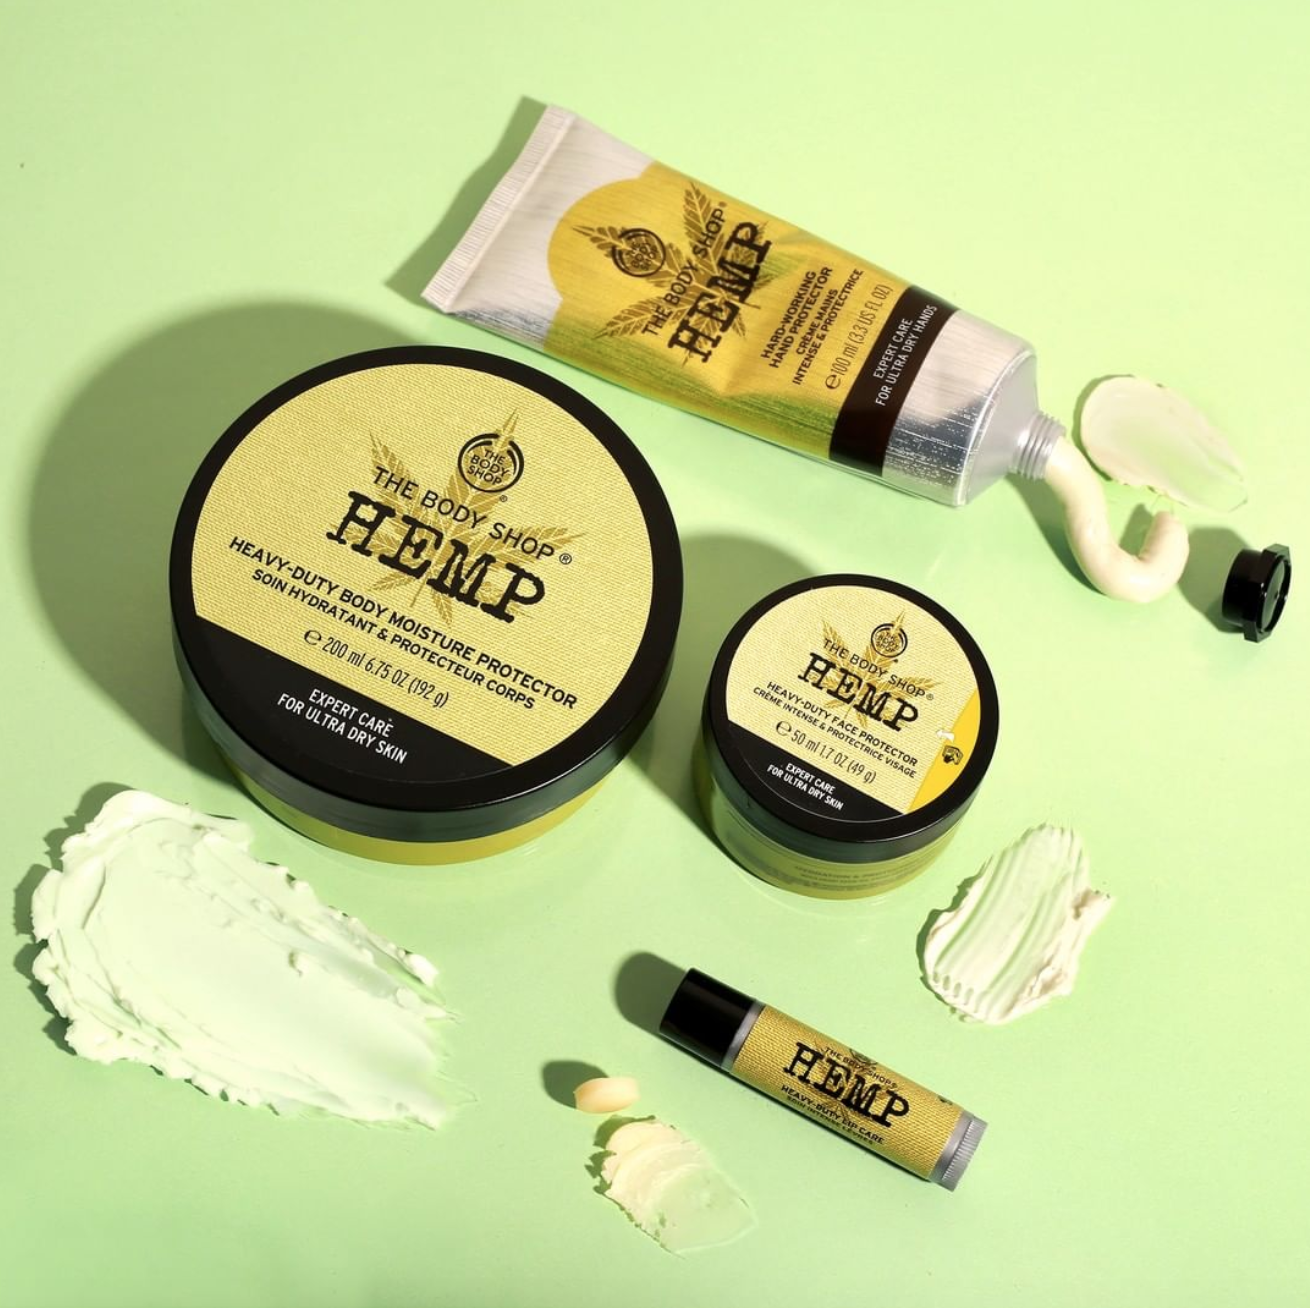 The Body Shop: Hemp Body Care Range - If you've been to a mall in the past 40 years, experienced female adolescence, or are from the UK, chances are you are all too familiar with the iconic British personal care and cosmetic brand, The Body Shop. But did you know they have an entire range dedicated to hemp products? Whether it's hand creams using hemp oil or exfoliating body mitts made of hemp fiber, their use of the plant is versatile and wholesome — not to mention, indulgently self-care focused.